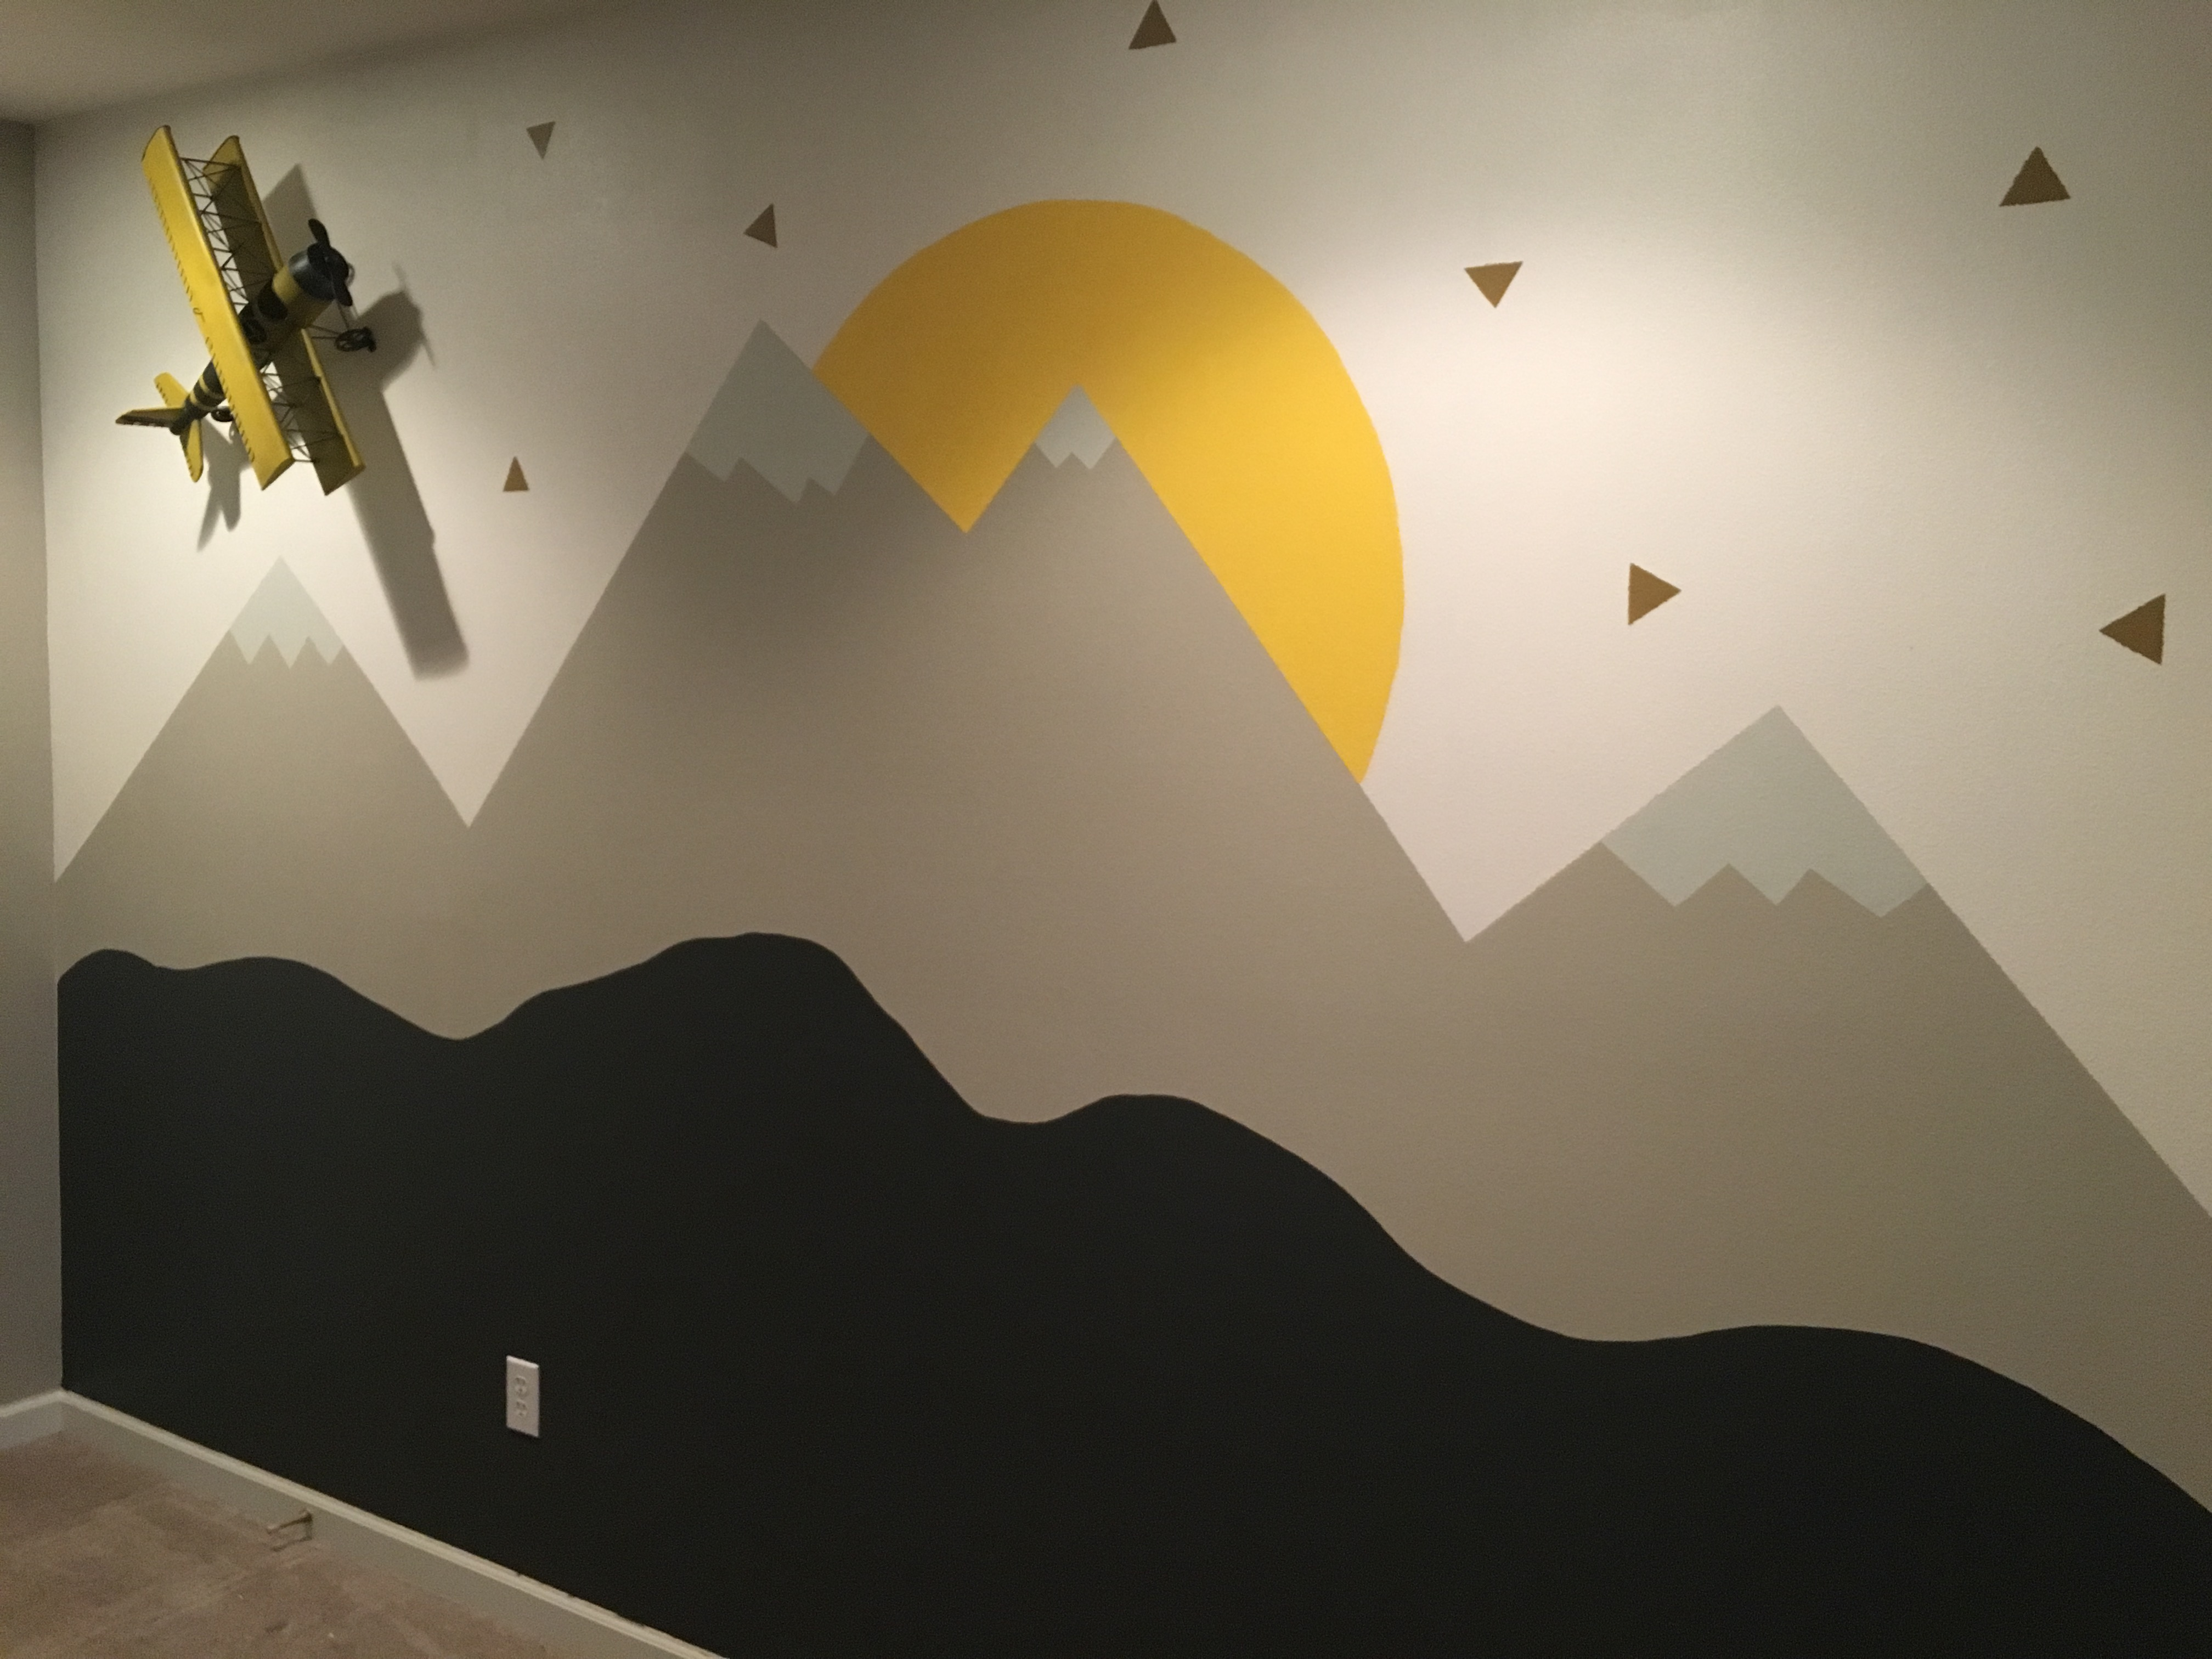 Mountain Wall Mural stepstep mountain wall mural | sincerely the smith's